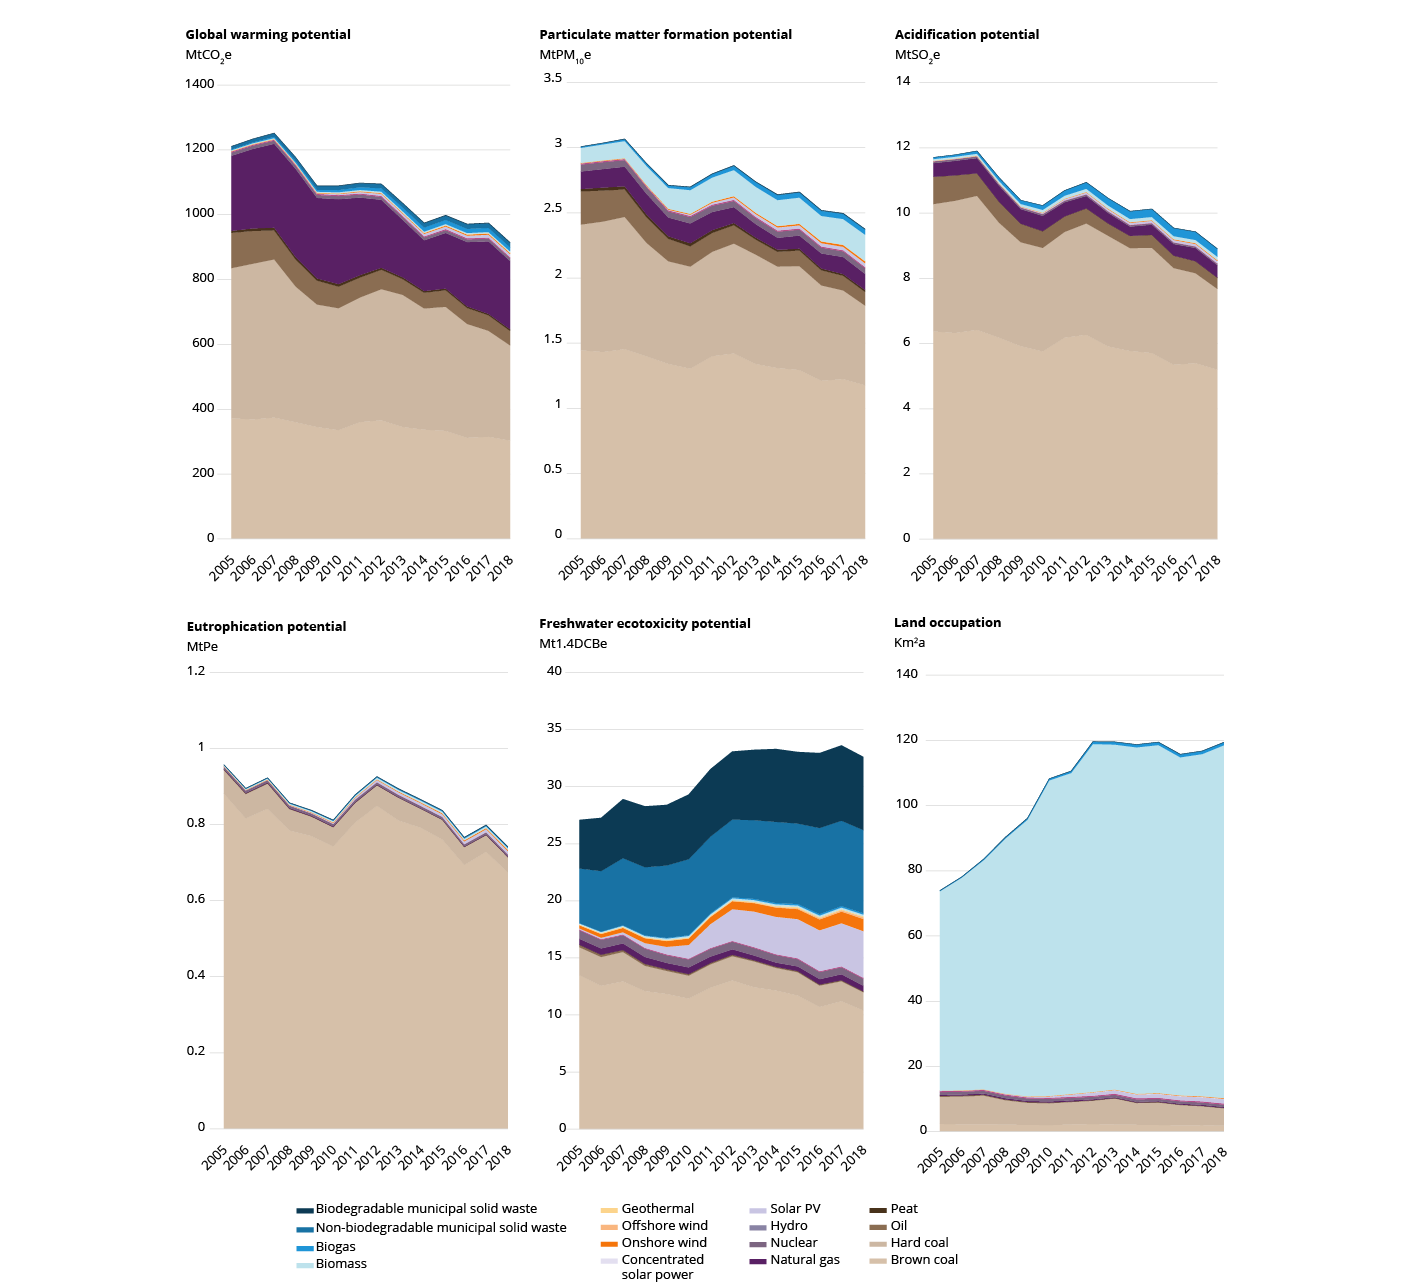 Figure 1. Annual life cycle impacts associated with gross electricity production in the EU